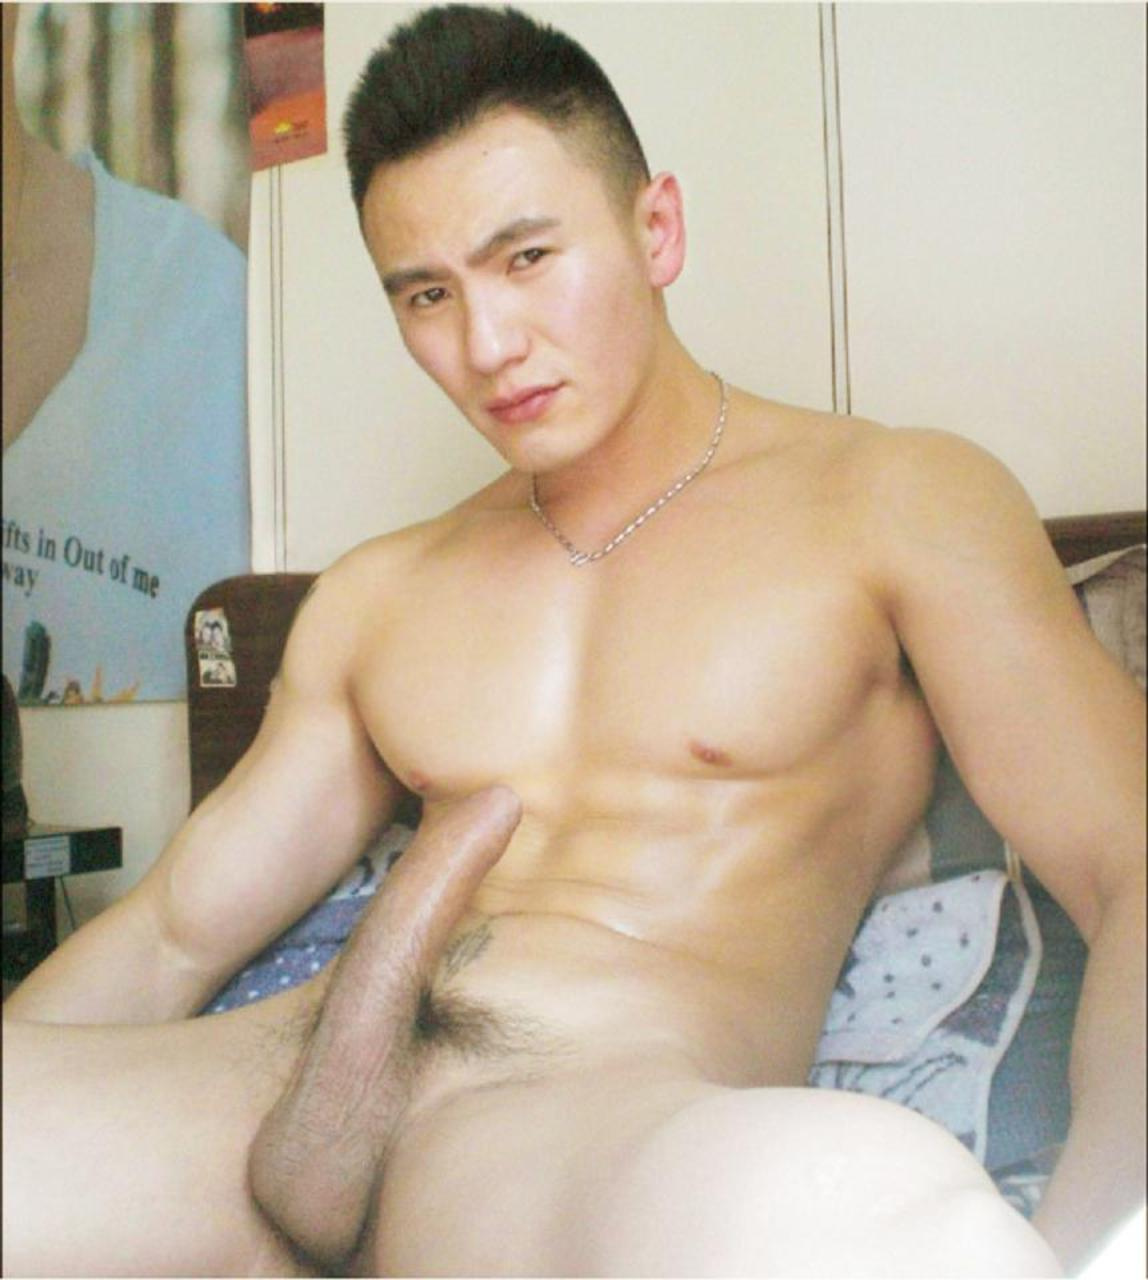 Baseball player fucks asian cleat chaser on the road 7